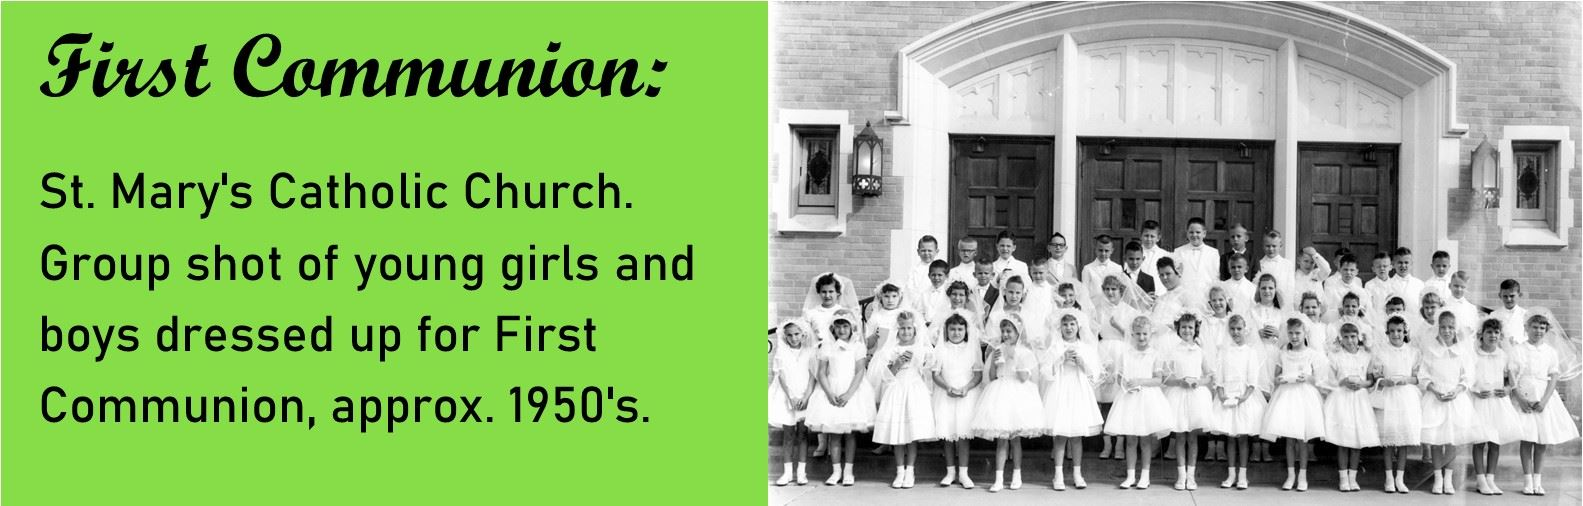 First Communion St Marys